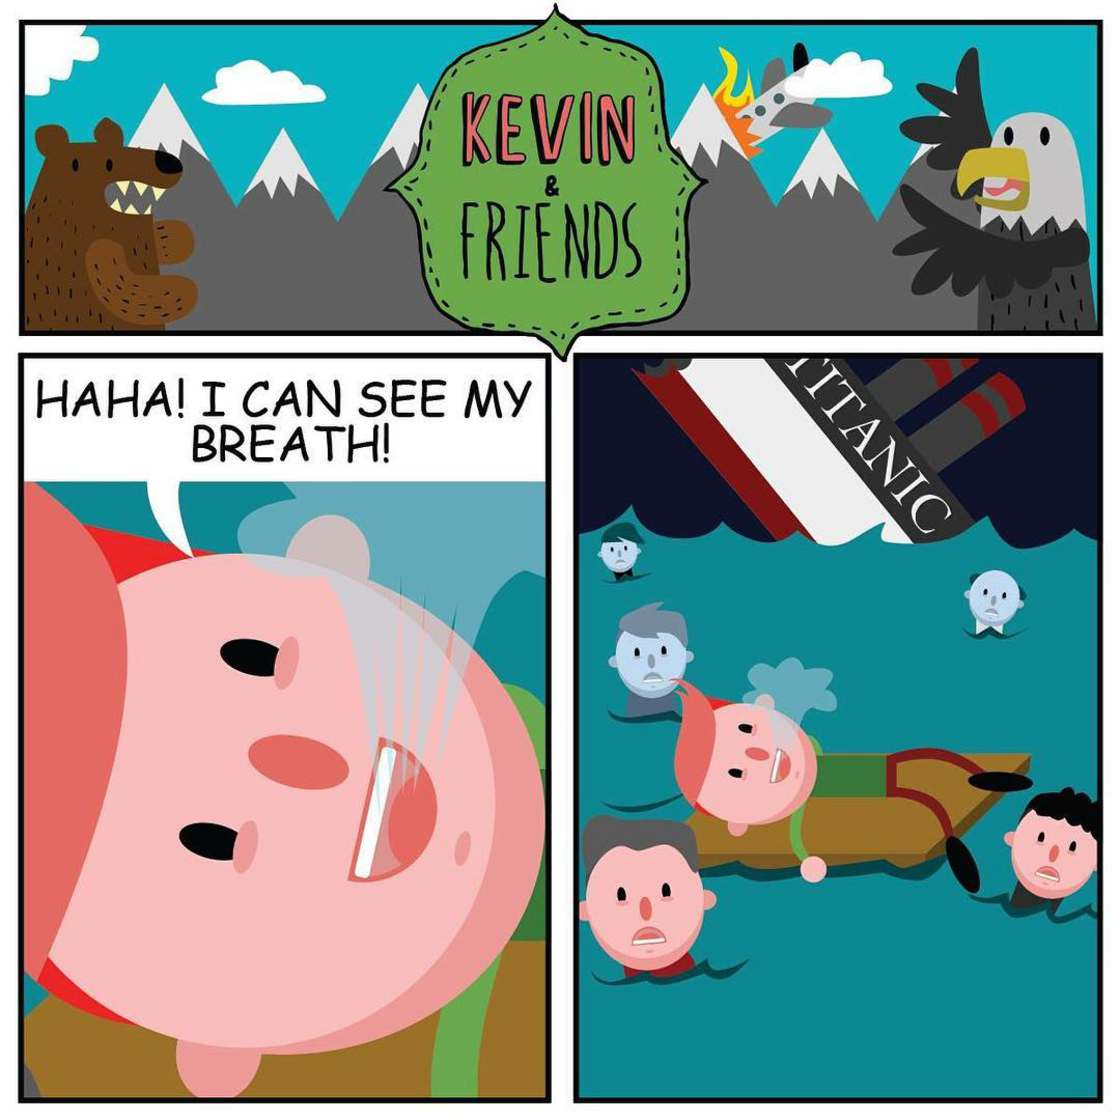 Kevin est optimiste - Des illustrations trash et bourrees d'humour noir